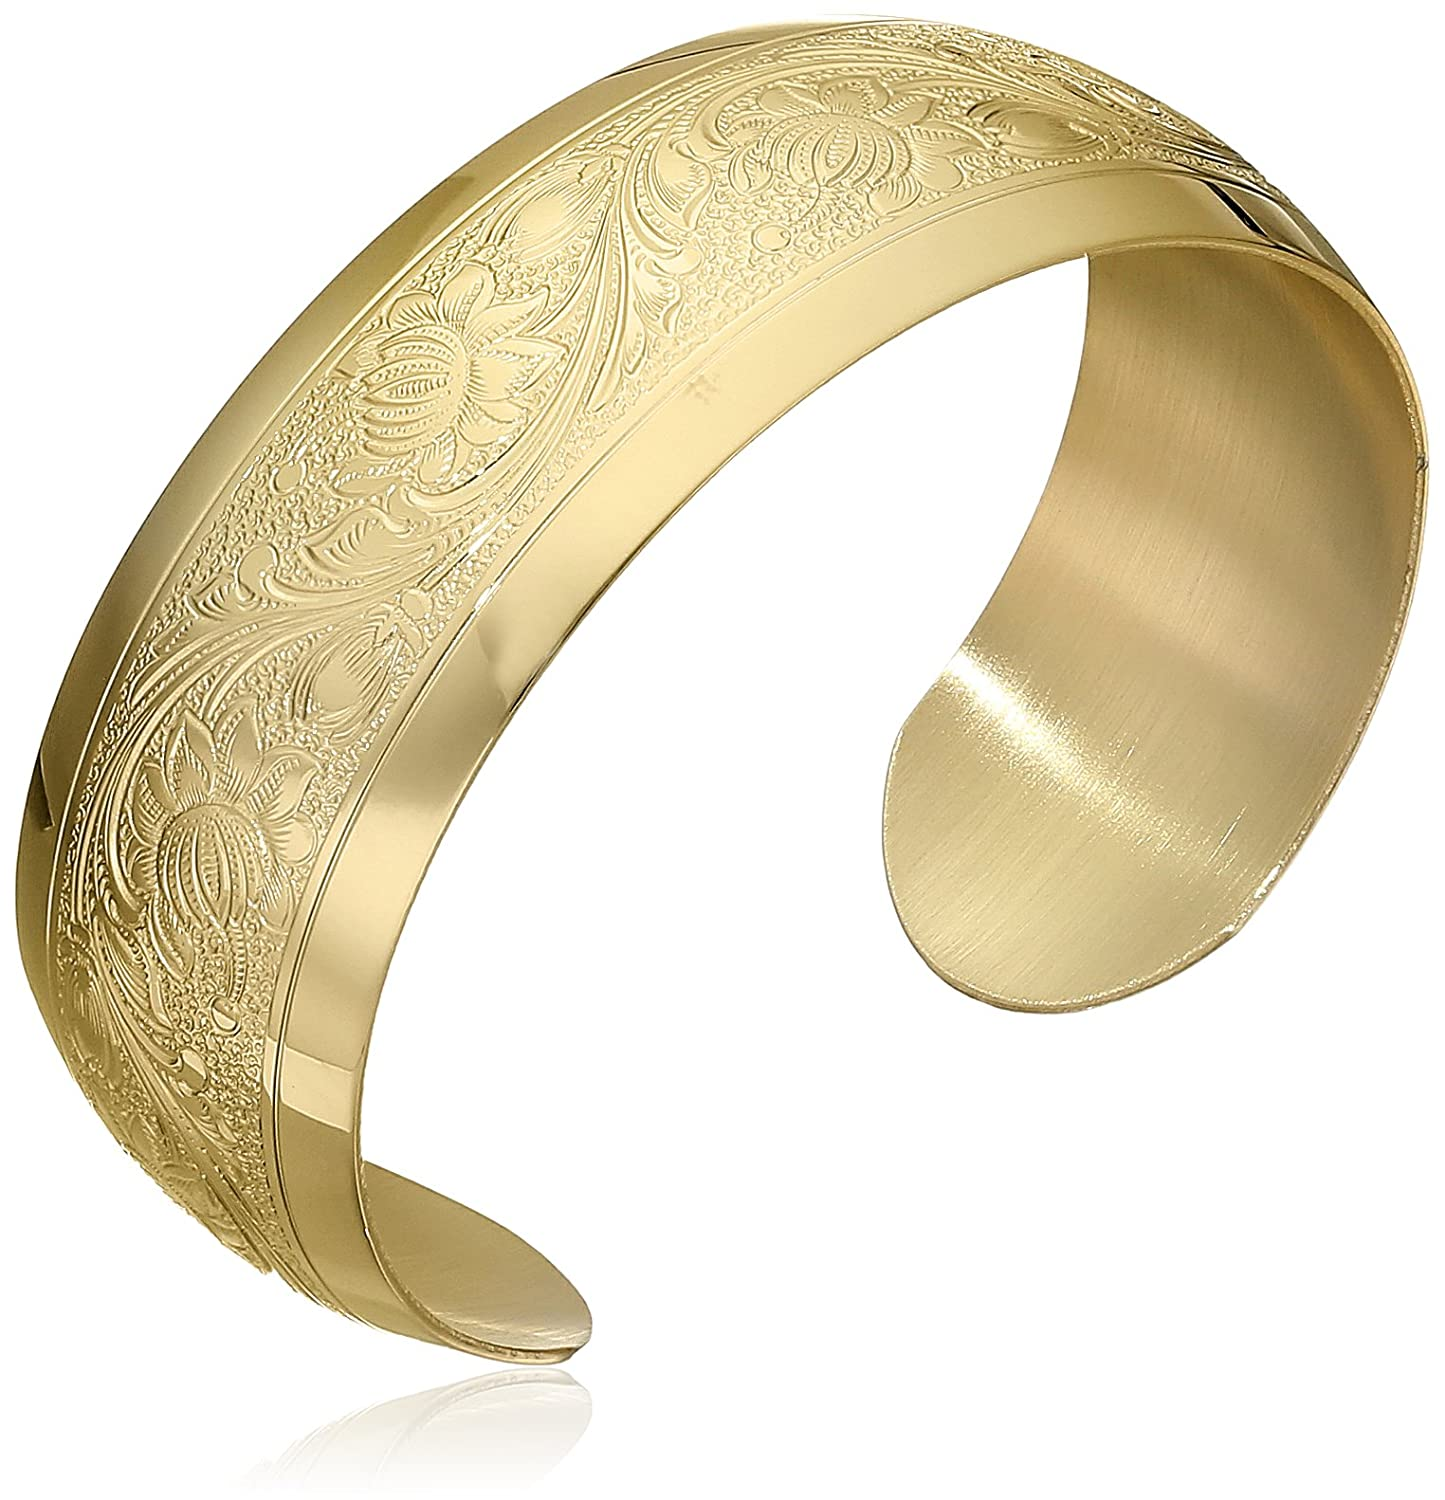 d6454bc36dc Amazon.com: 14k Yellow Gold-Filled Embossed Flower Design Cuff Bracelet:  Jewelry